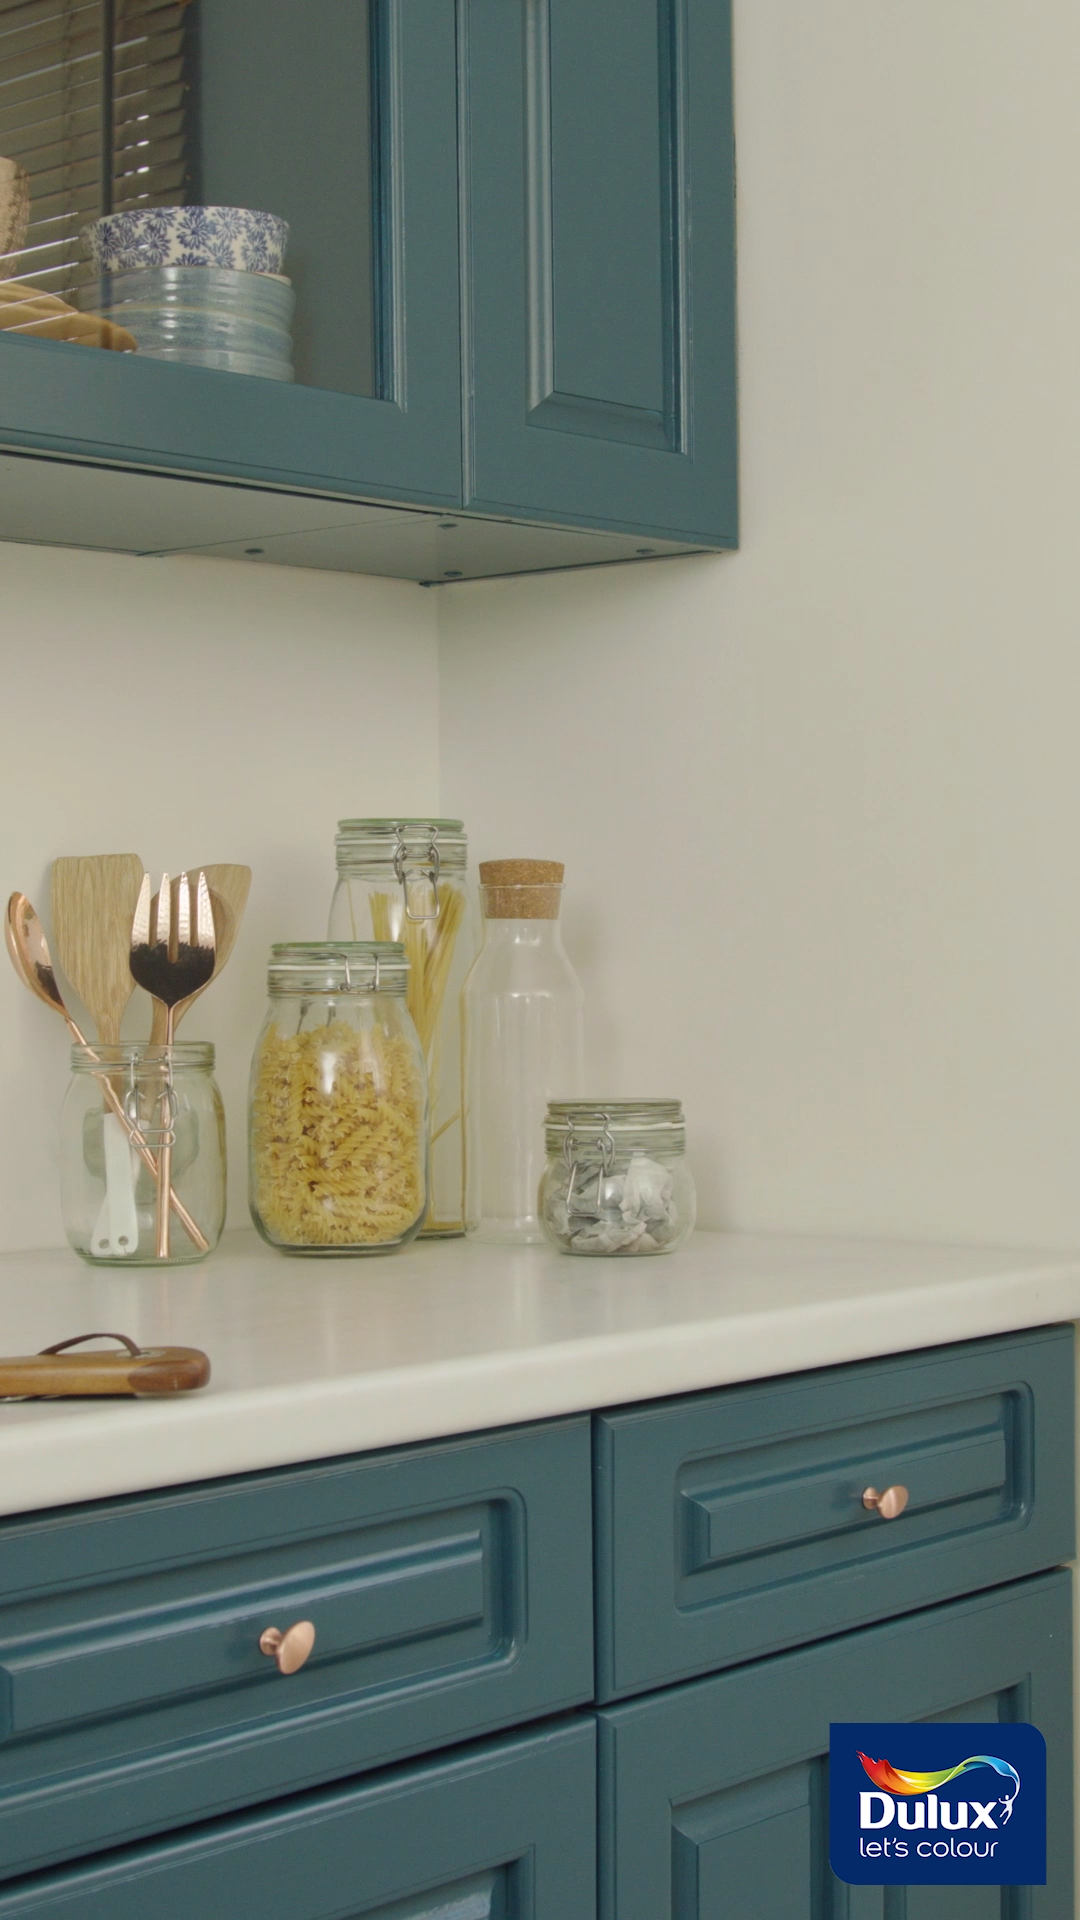 Looking At Giving Your Kitchen Cabinets A Makeover Find Out How To Paint Your Kitchen Cabi In 2020 Kitchen Renovation Kitchen Cabinets Makeover Diy Kitchen Renovation